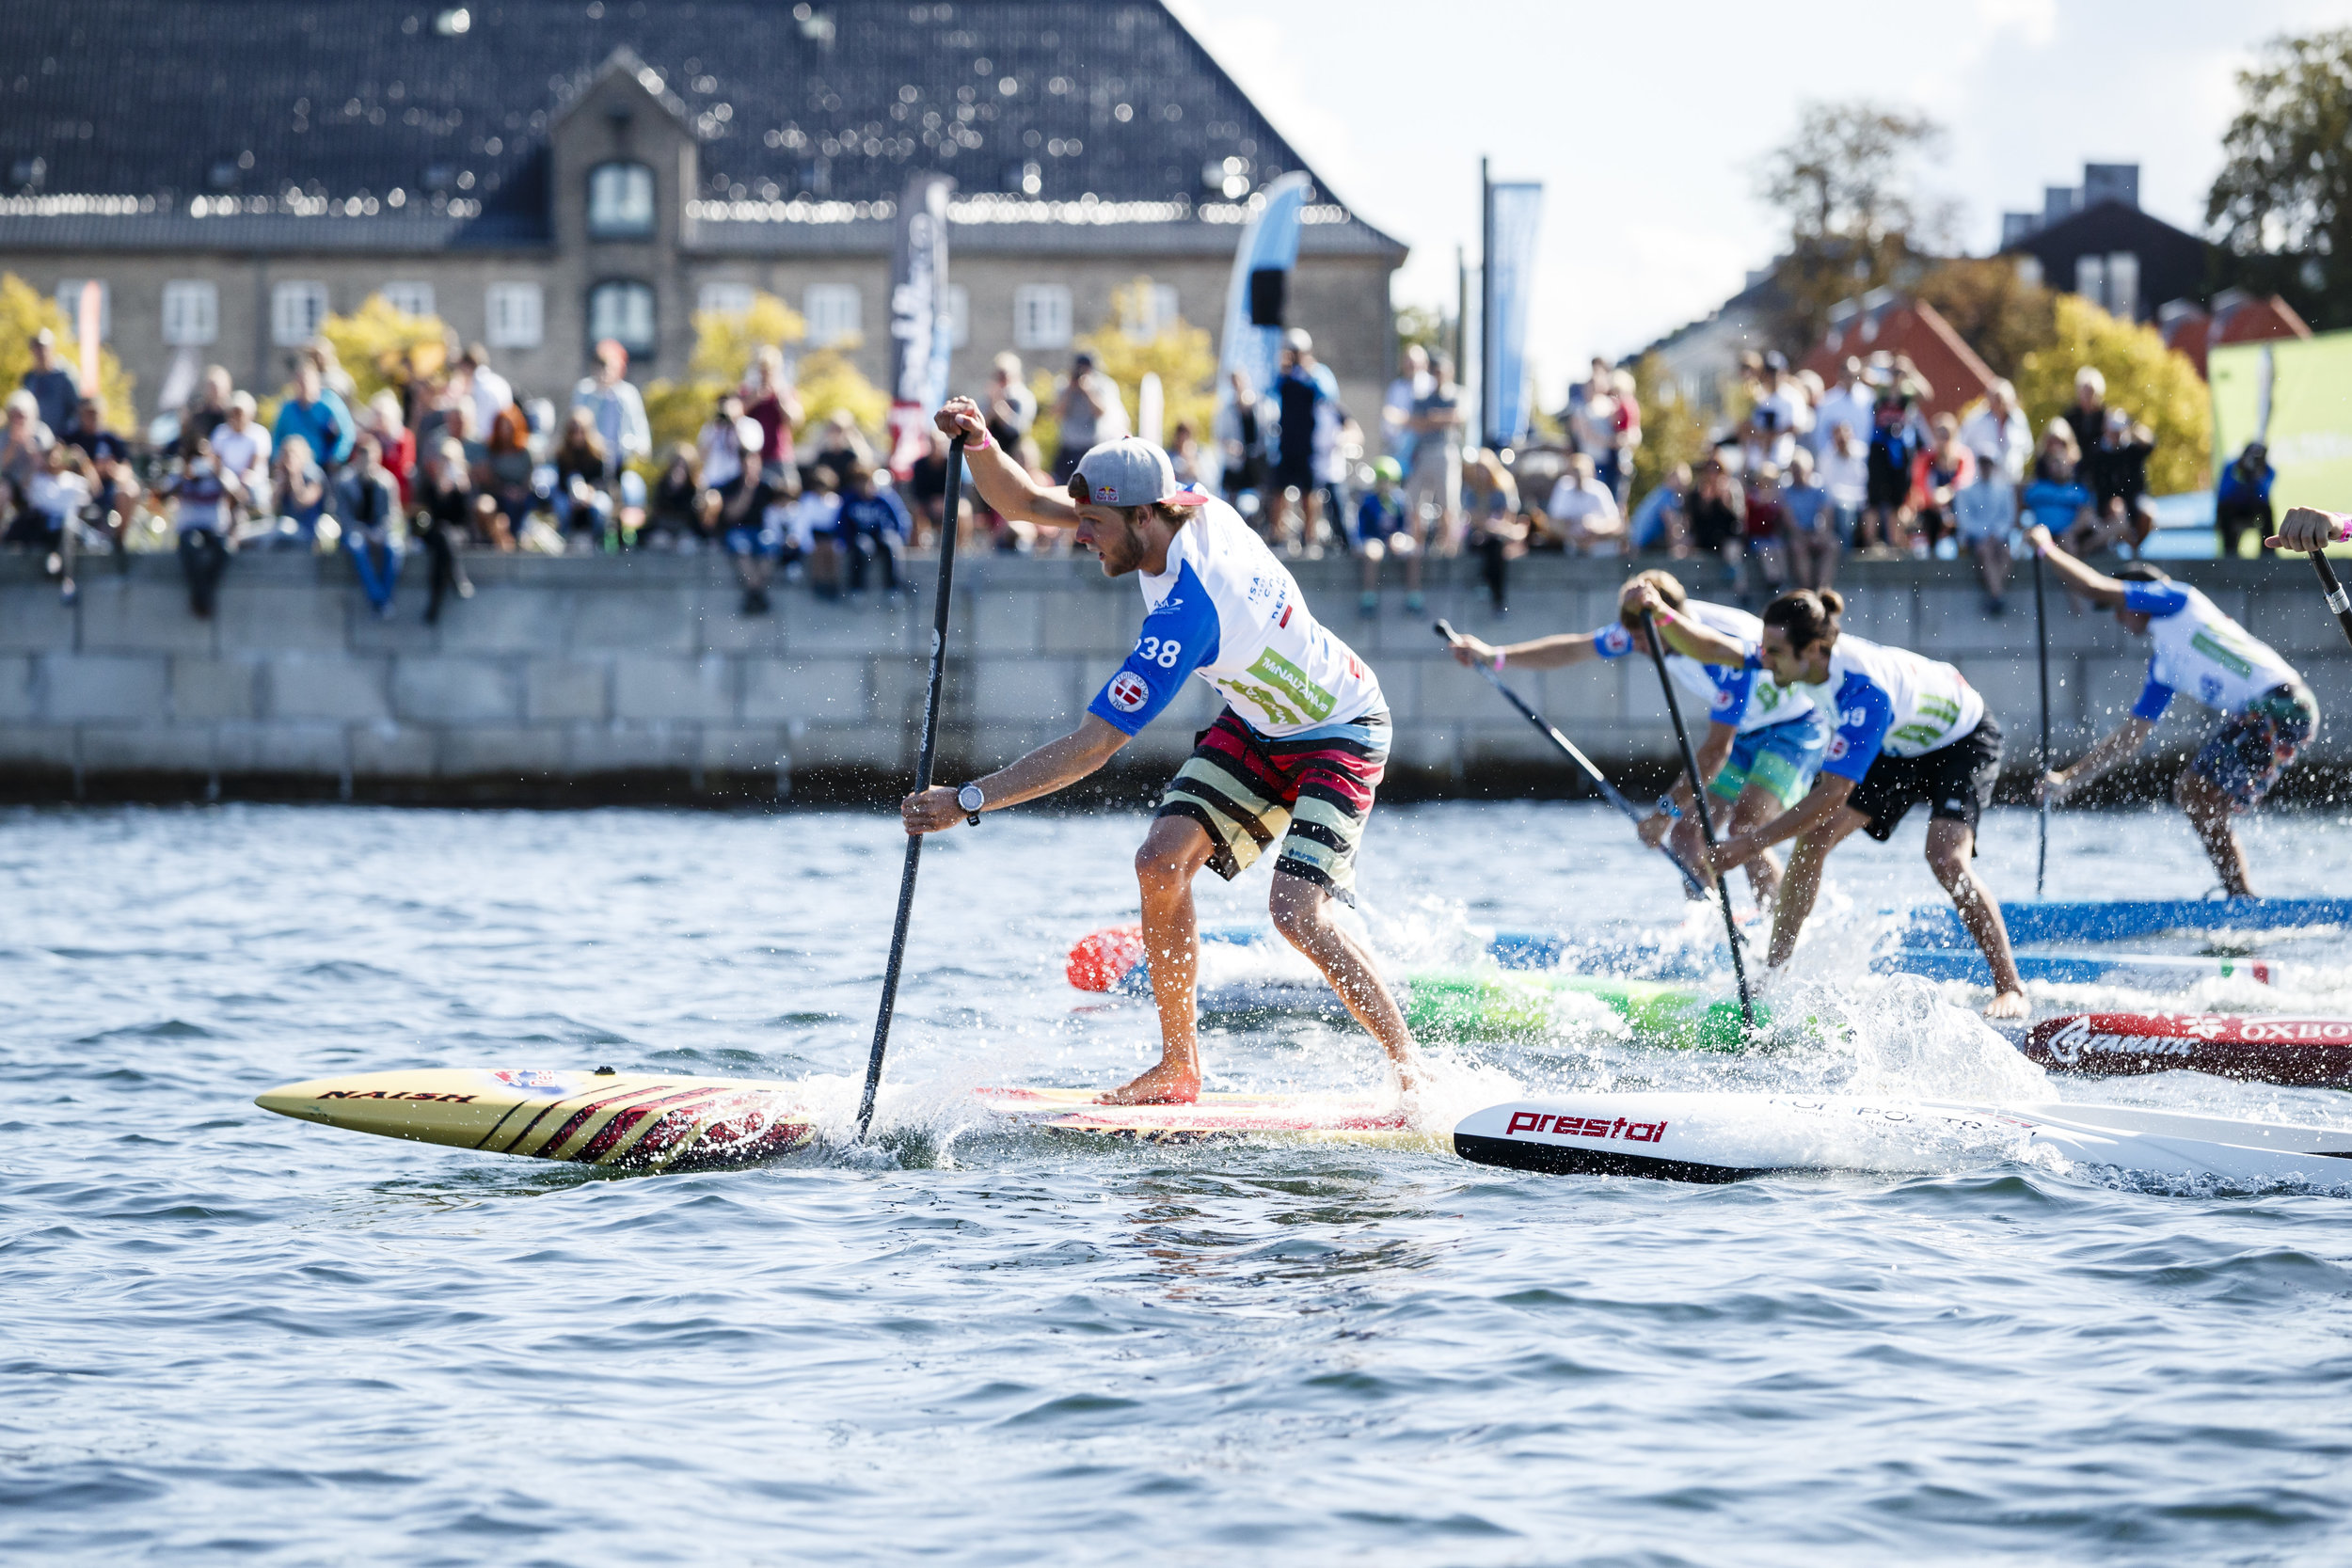 """Sprint Race - Sprint is a 200 meter SUP race, in a straight line, at the highest possible paddling speed. Women and men compete in separate races. The """"track"""" will be located right in front of the venue in Copenhagen which will make it easy to follow the races."""